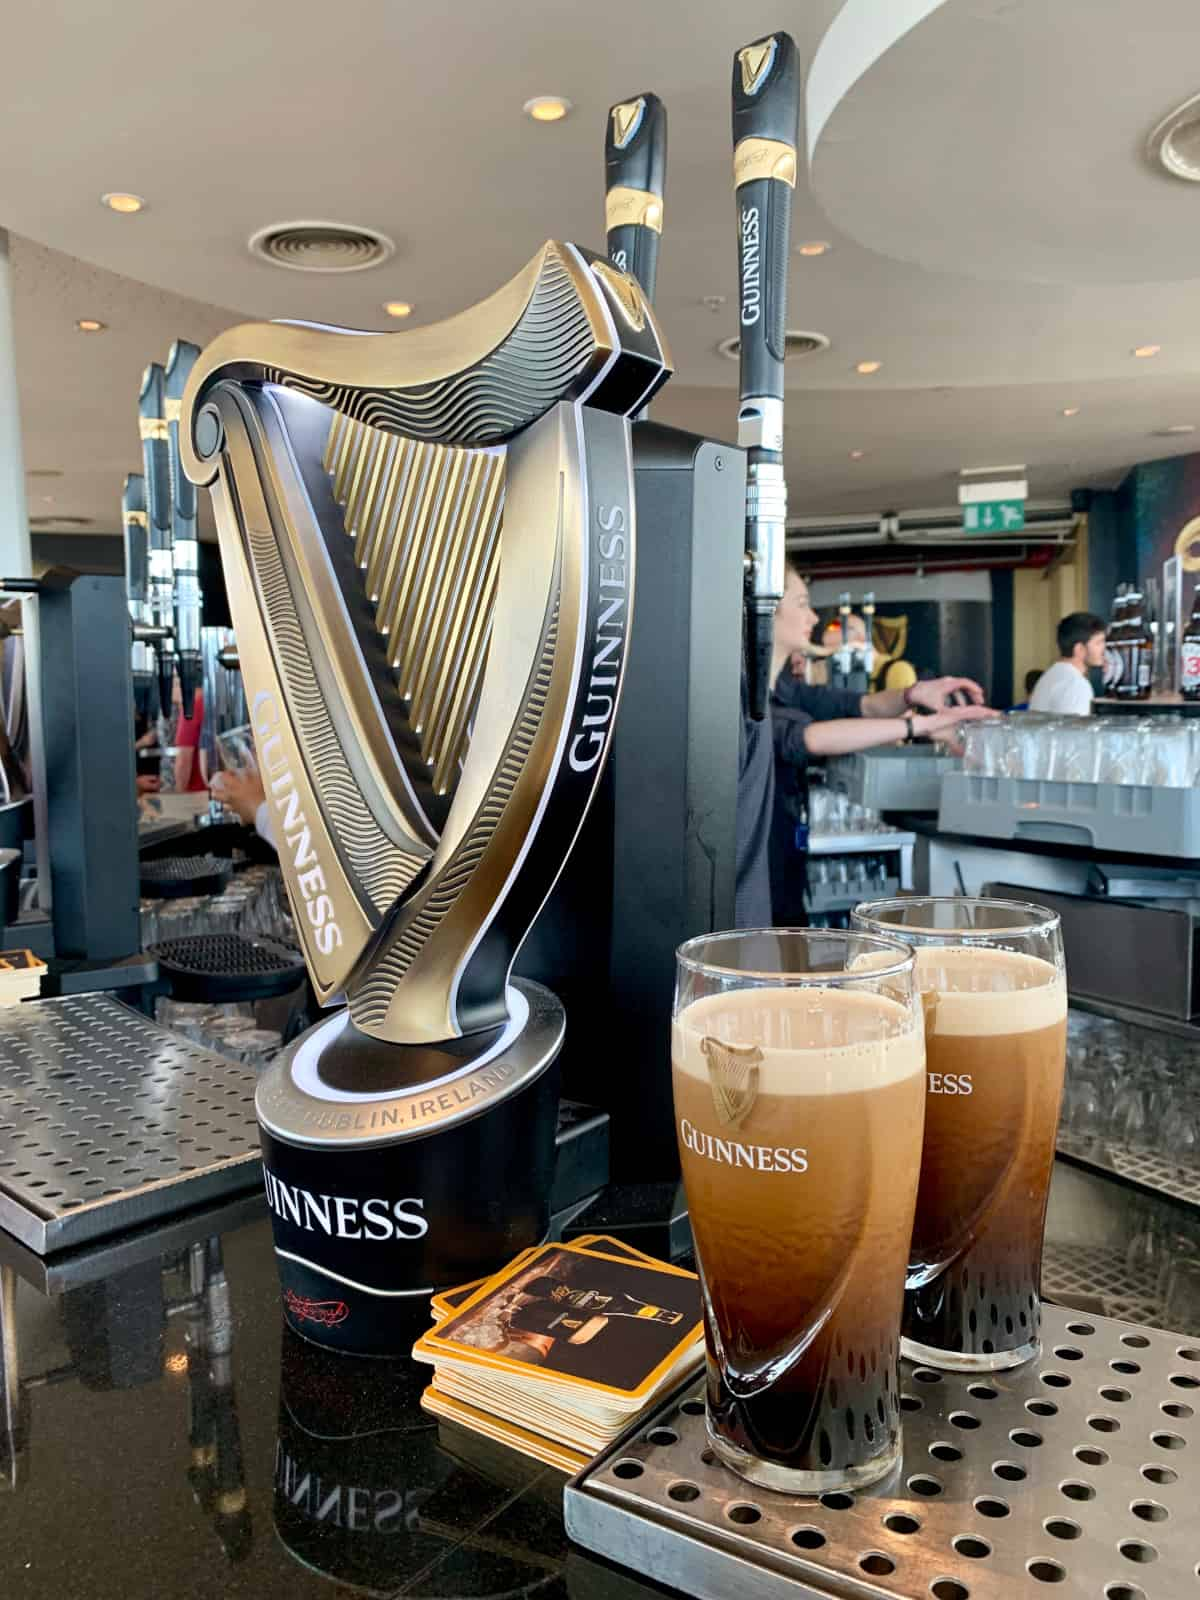 Getting my free pint at Guinness Storehouse...after the self-tour!